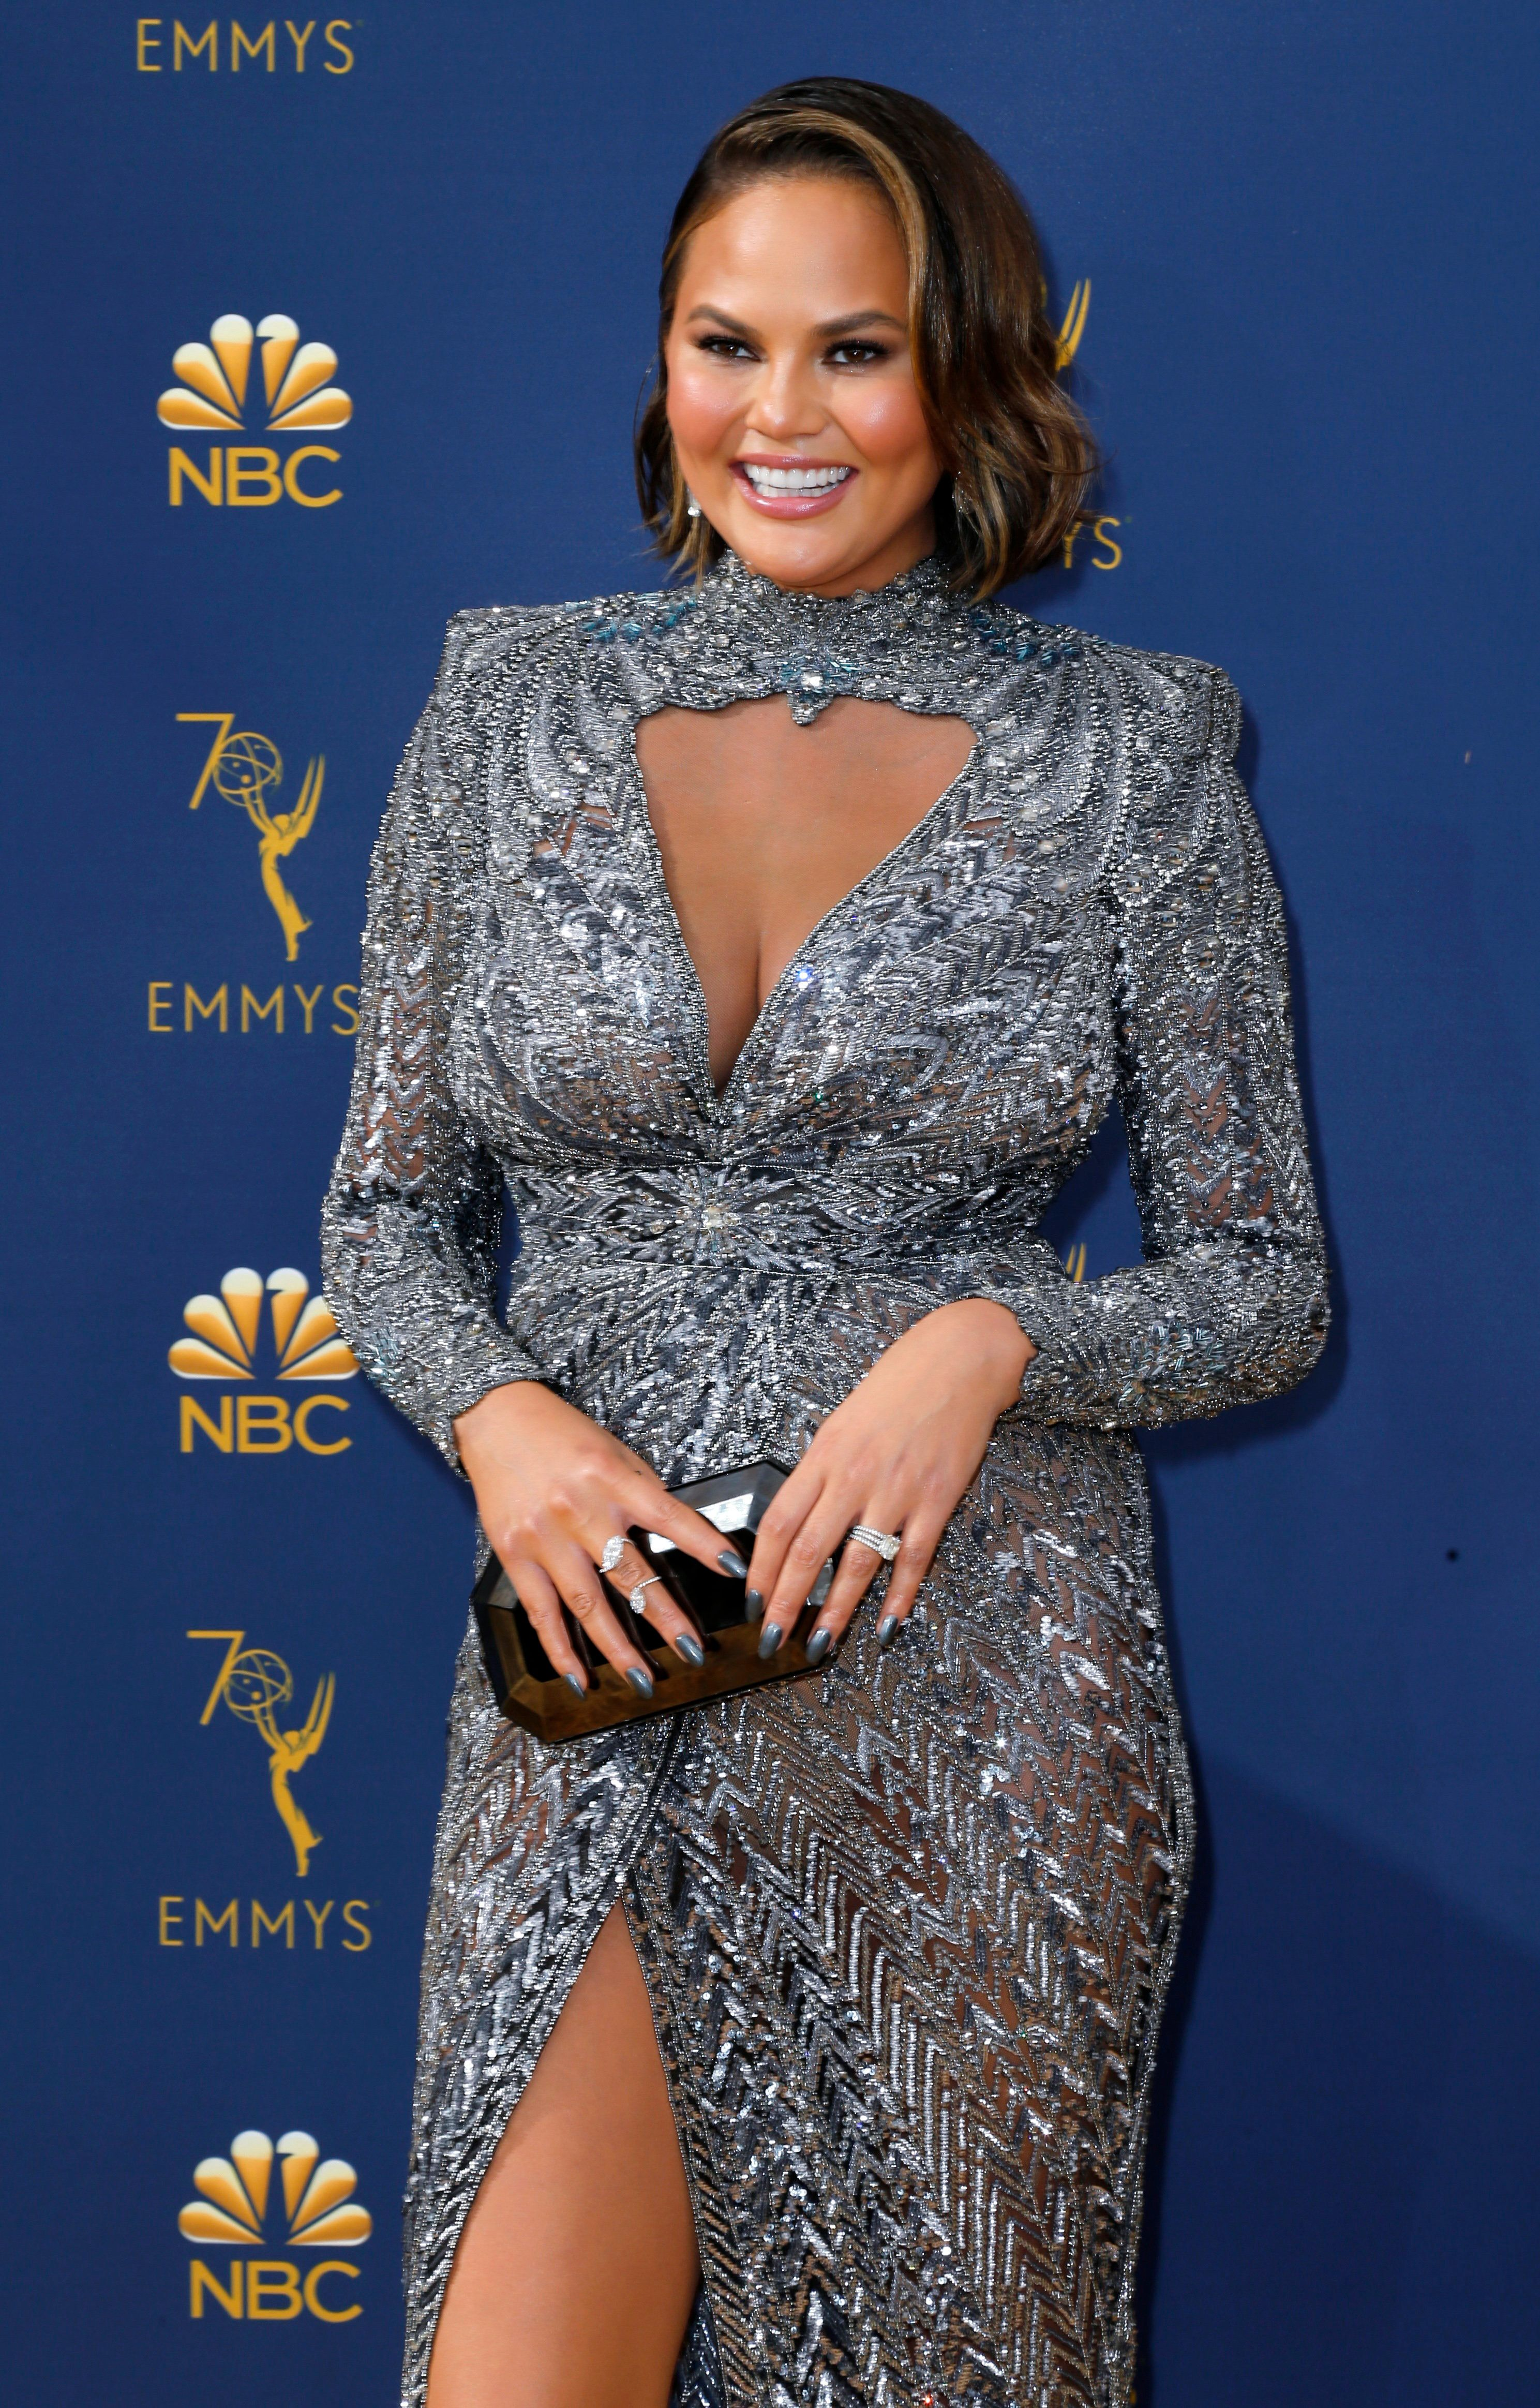 70th Primetime Emmy Awards– Arrivals – Los Angeles, California, U.S., 17/09/2018 – Chrissy Teigen. REUTERS/Kyle Grillot